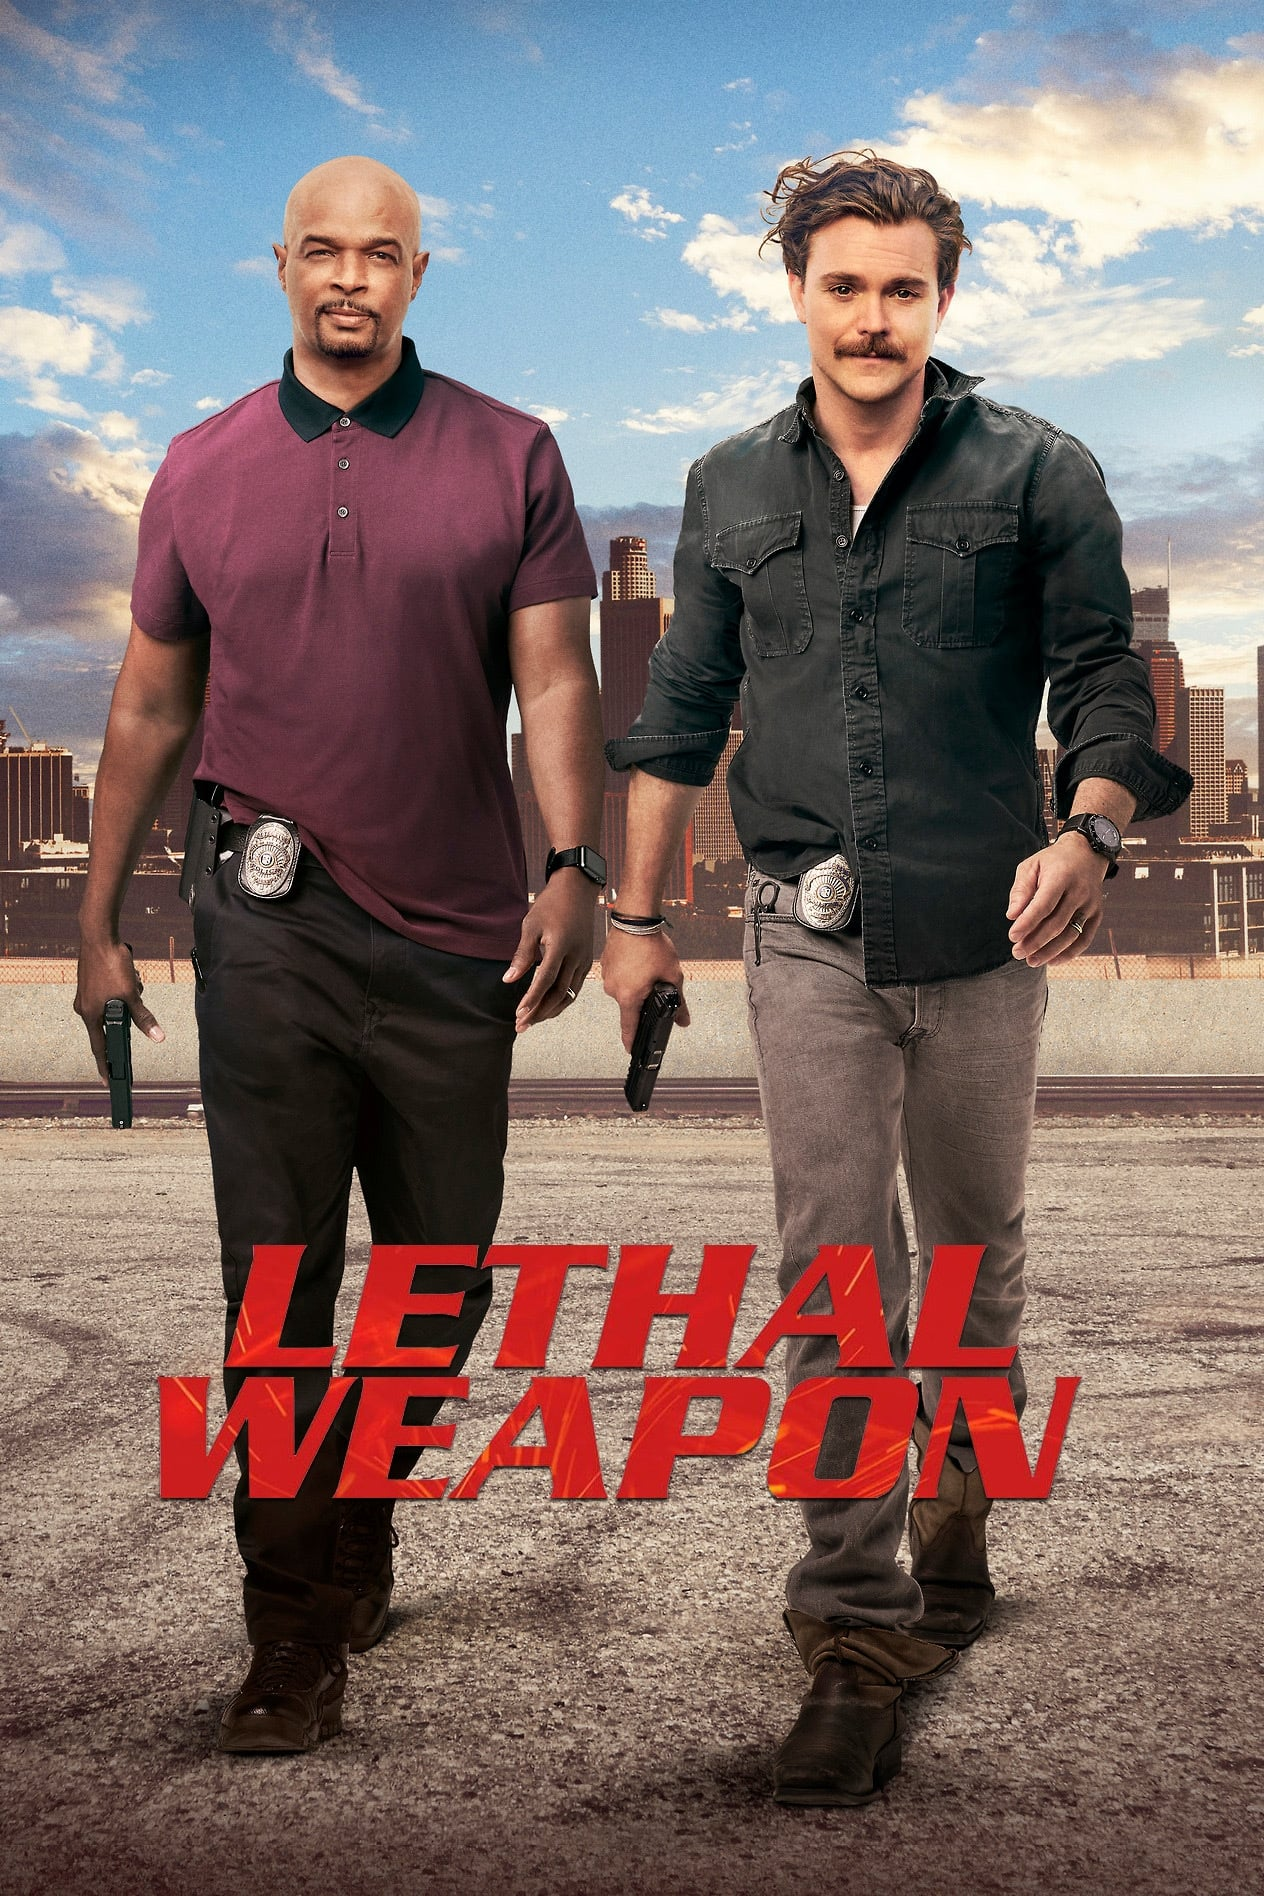 Serie Lethal Weapon